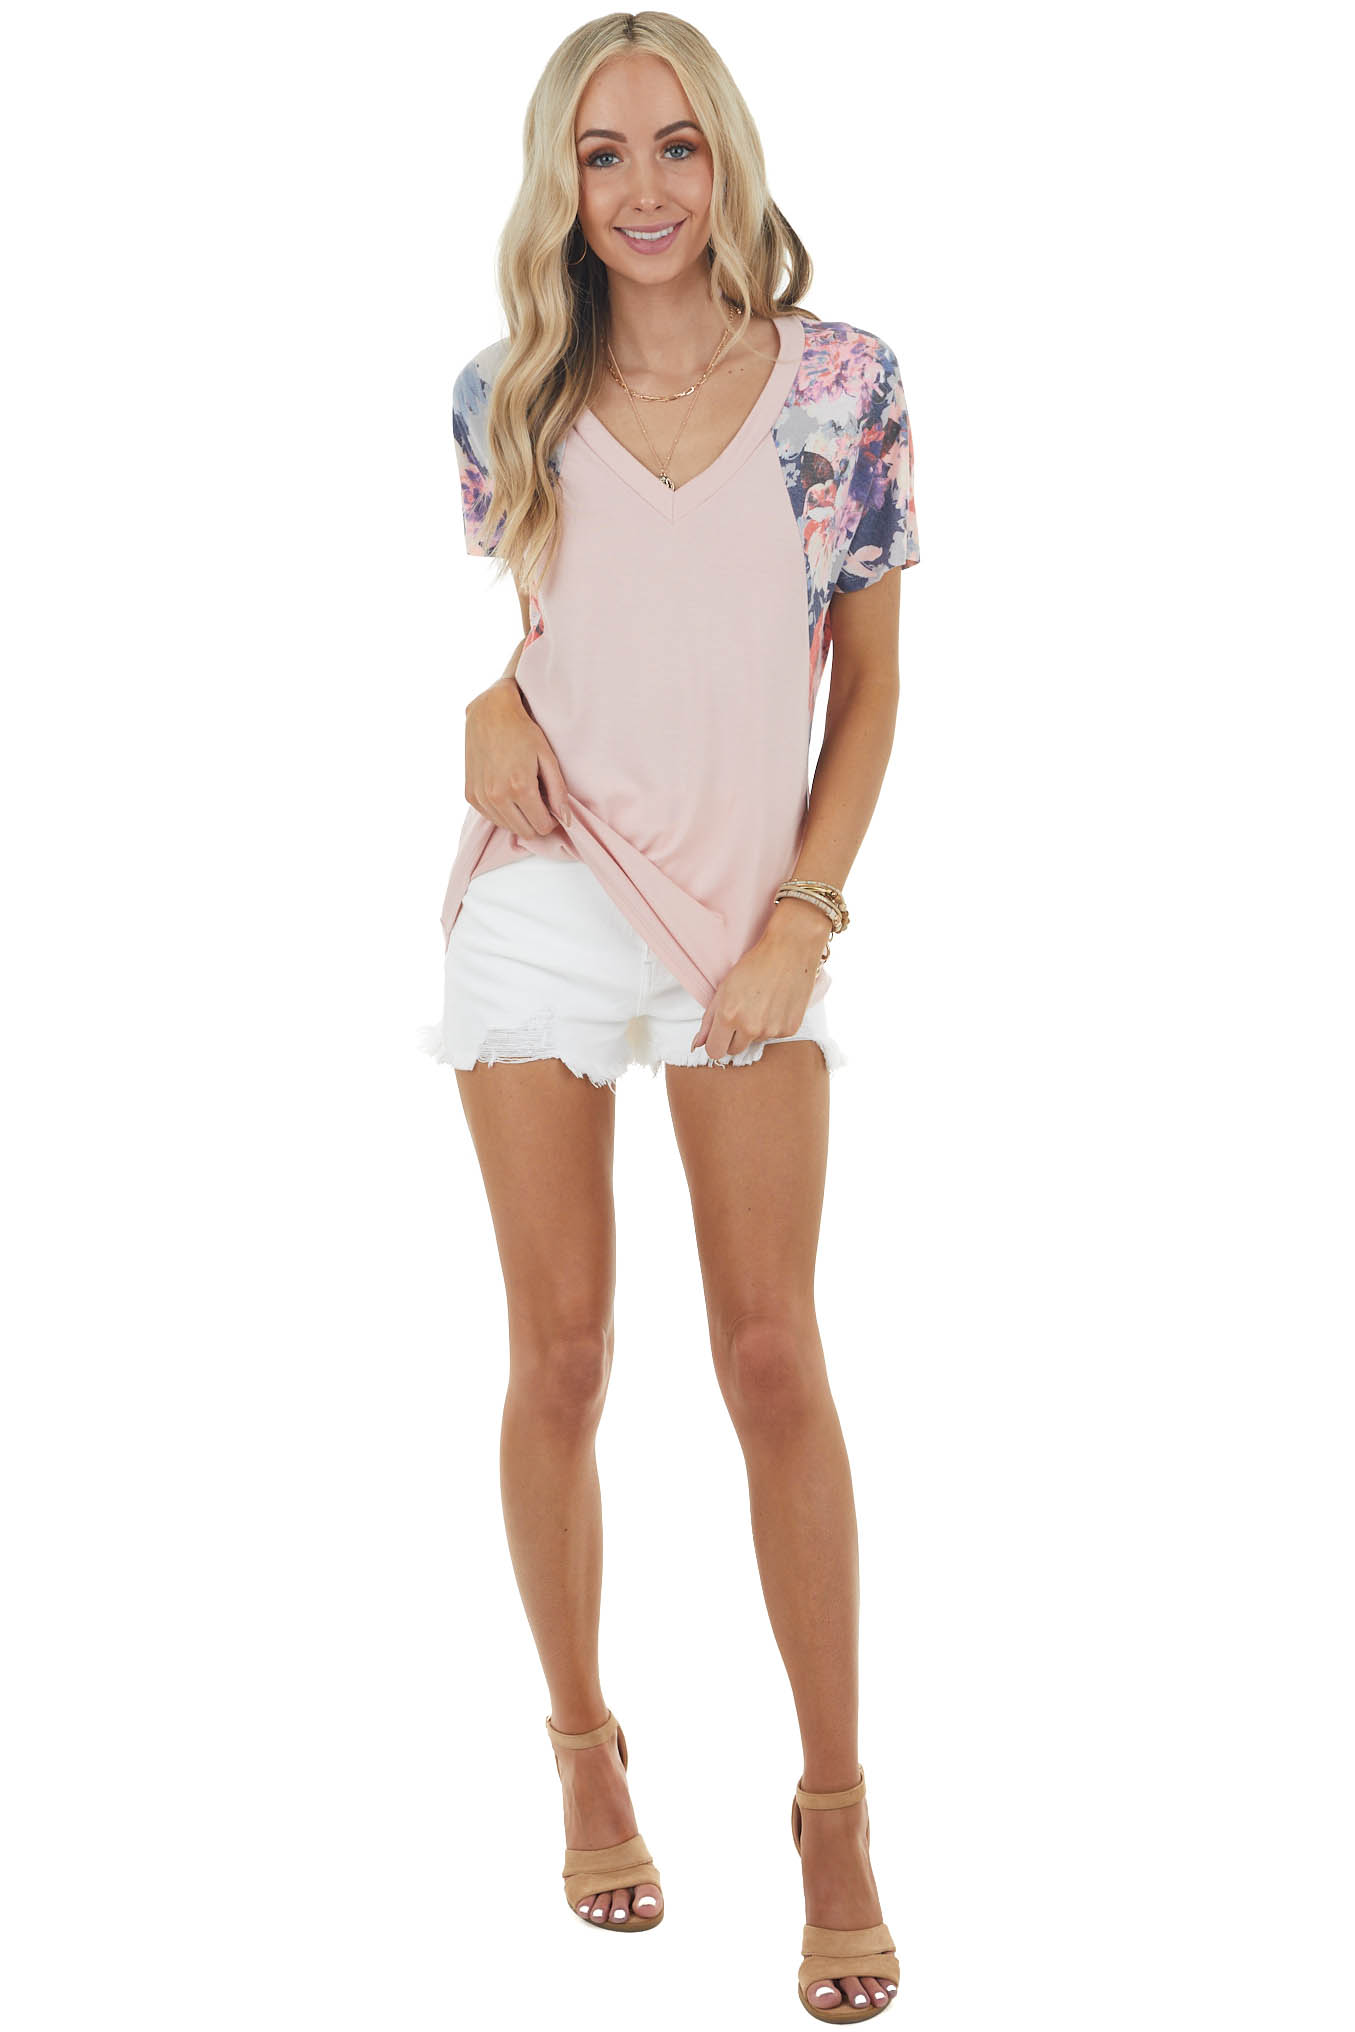 Dusty Blush Knit Top with Short Floral Raglan Sleeves